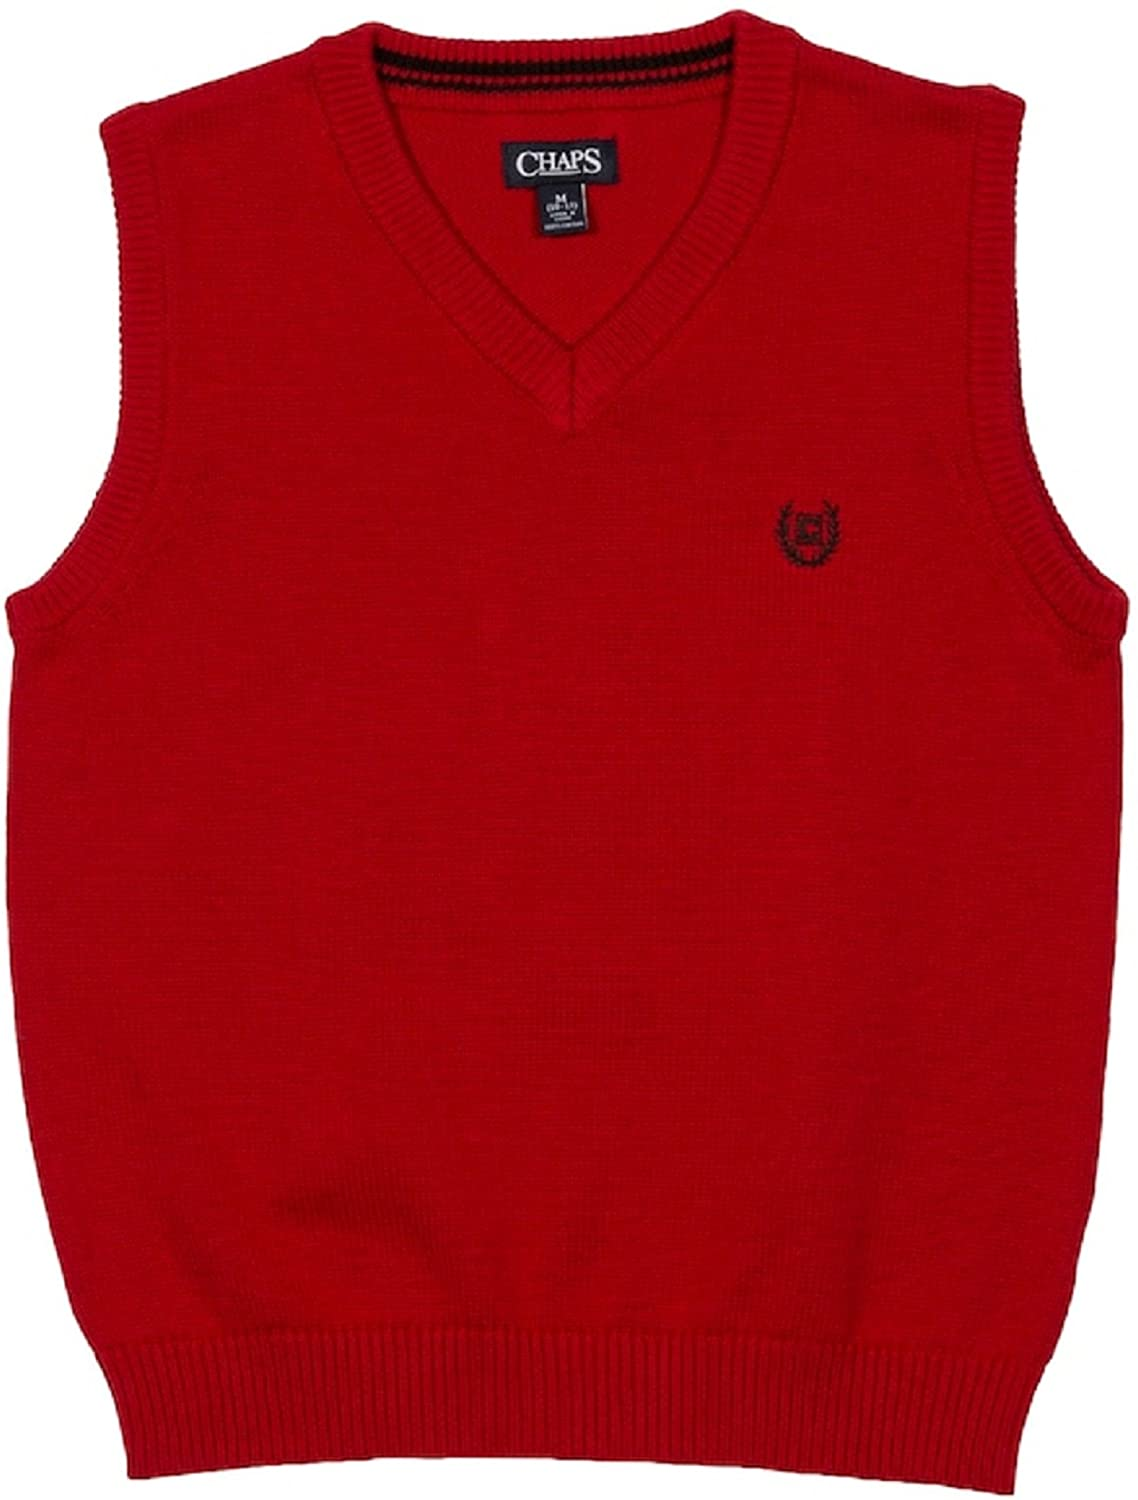 Chaps Solid Sweater Vest (14-16) (Red)